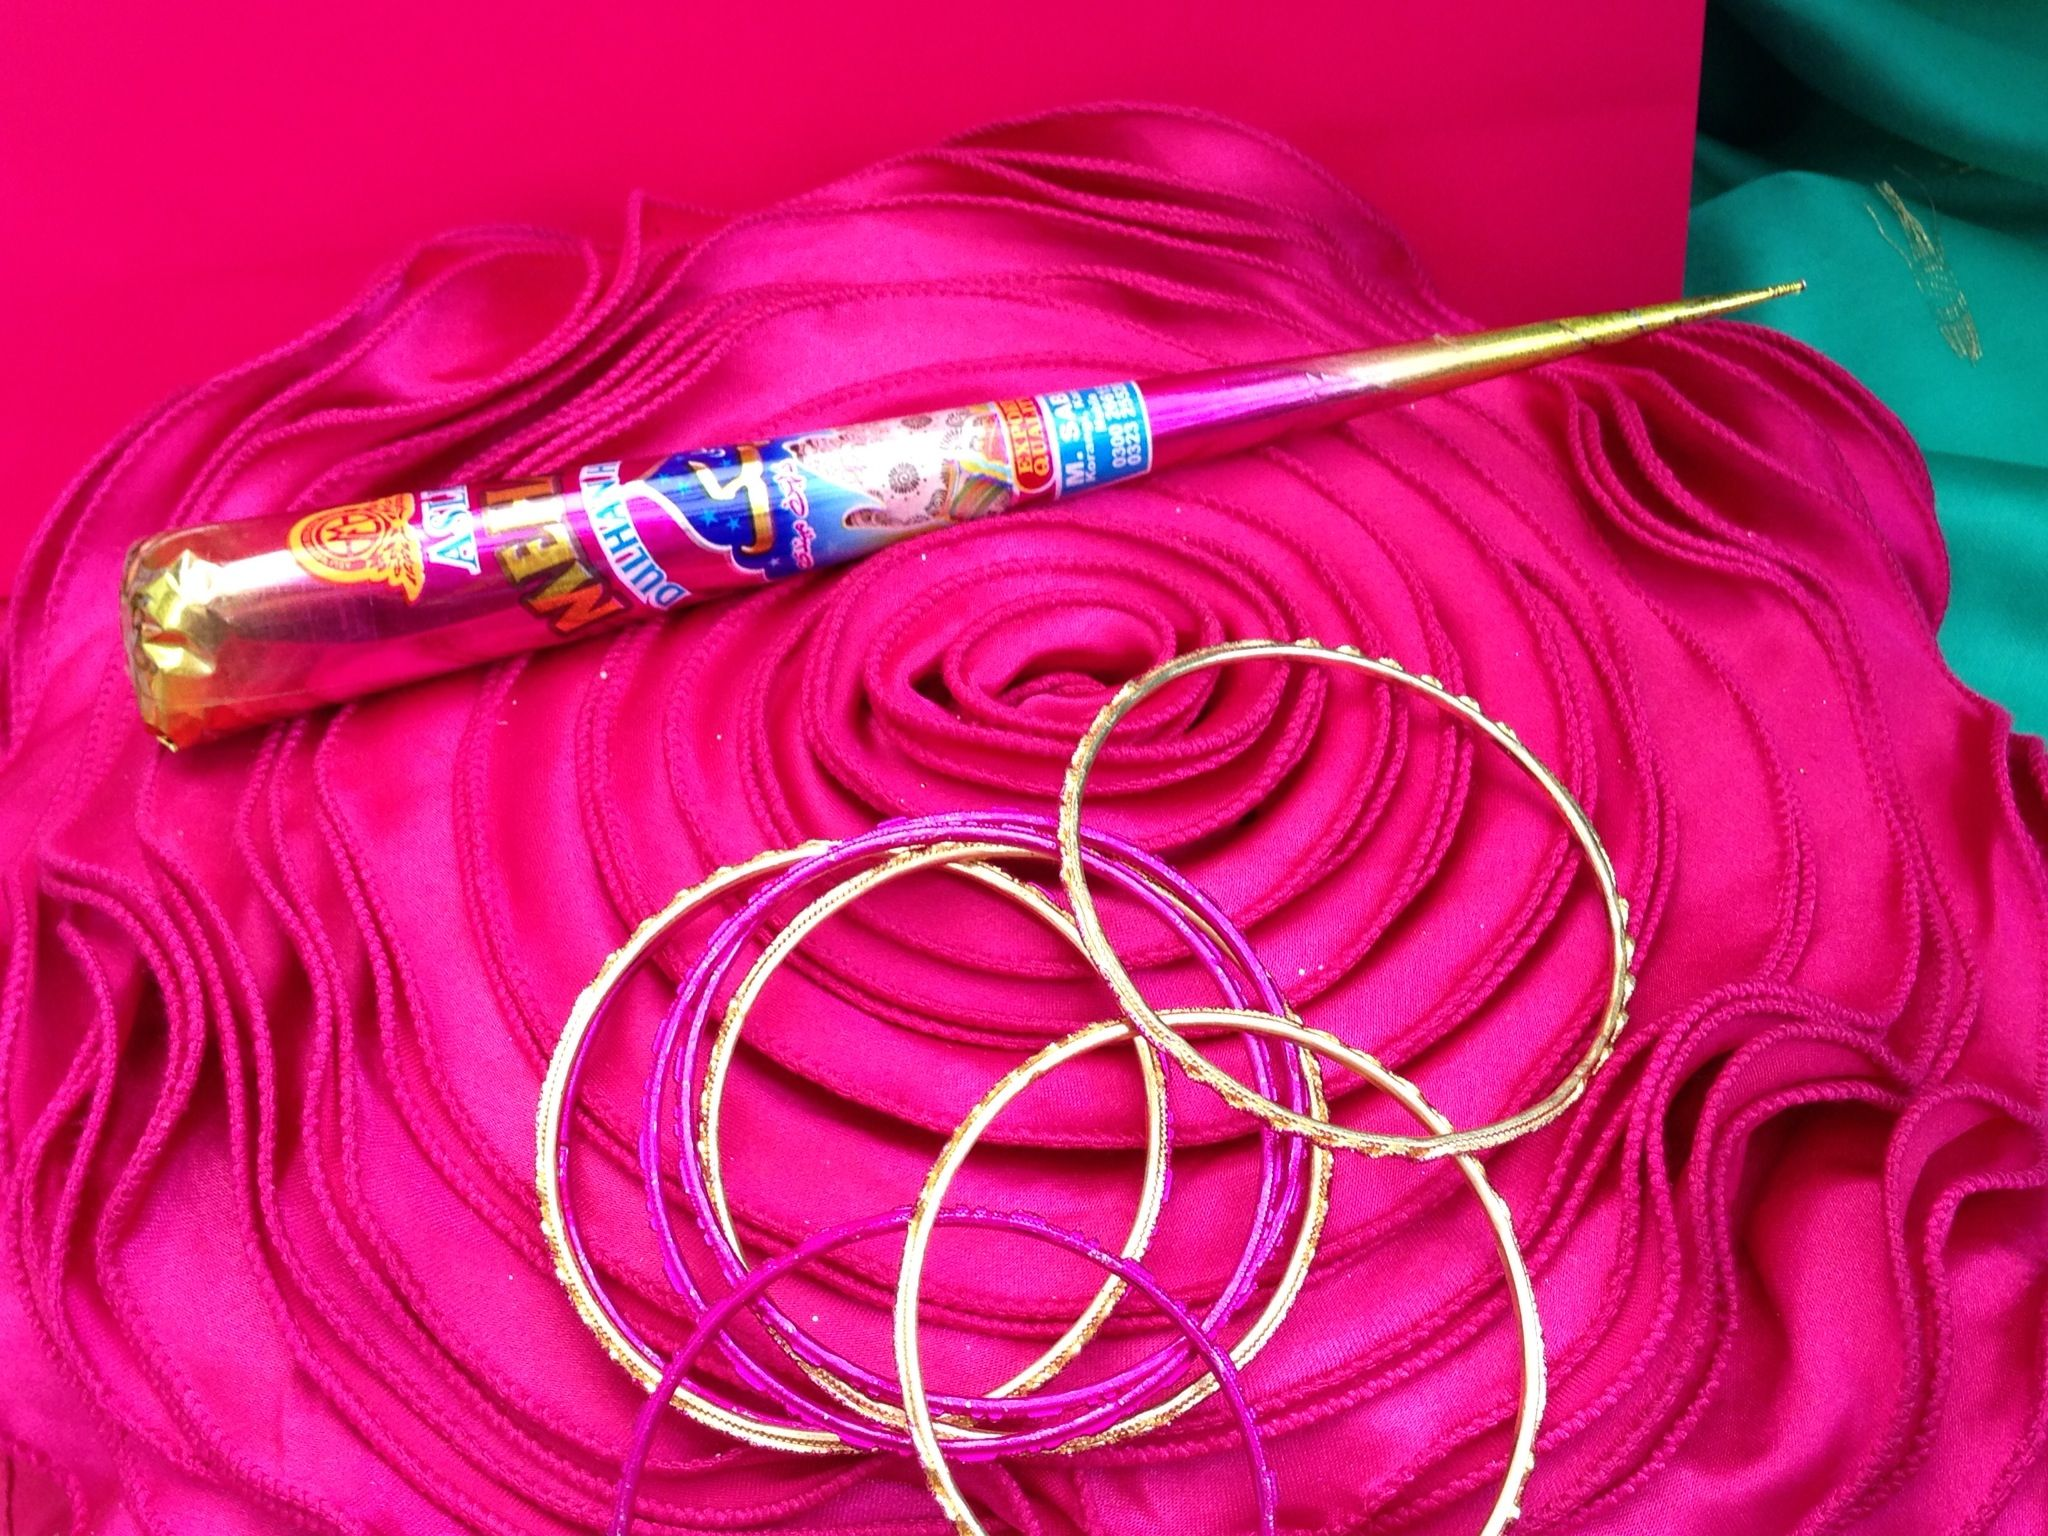 Henna Mehndi Cones Uk : Henna cone with bangles preparation for a mehndi party by www